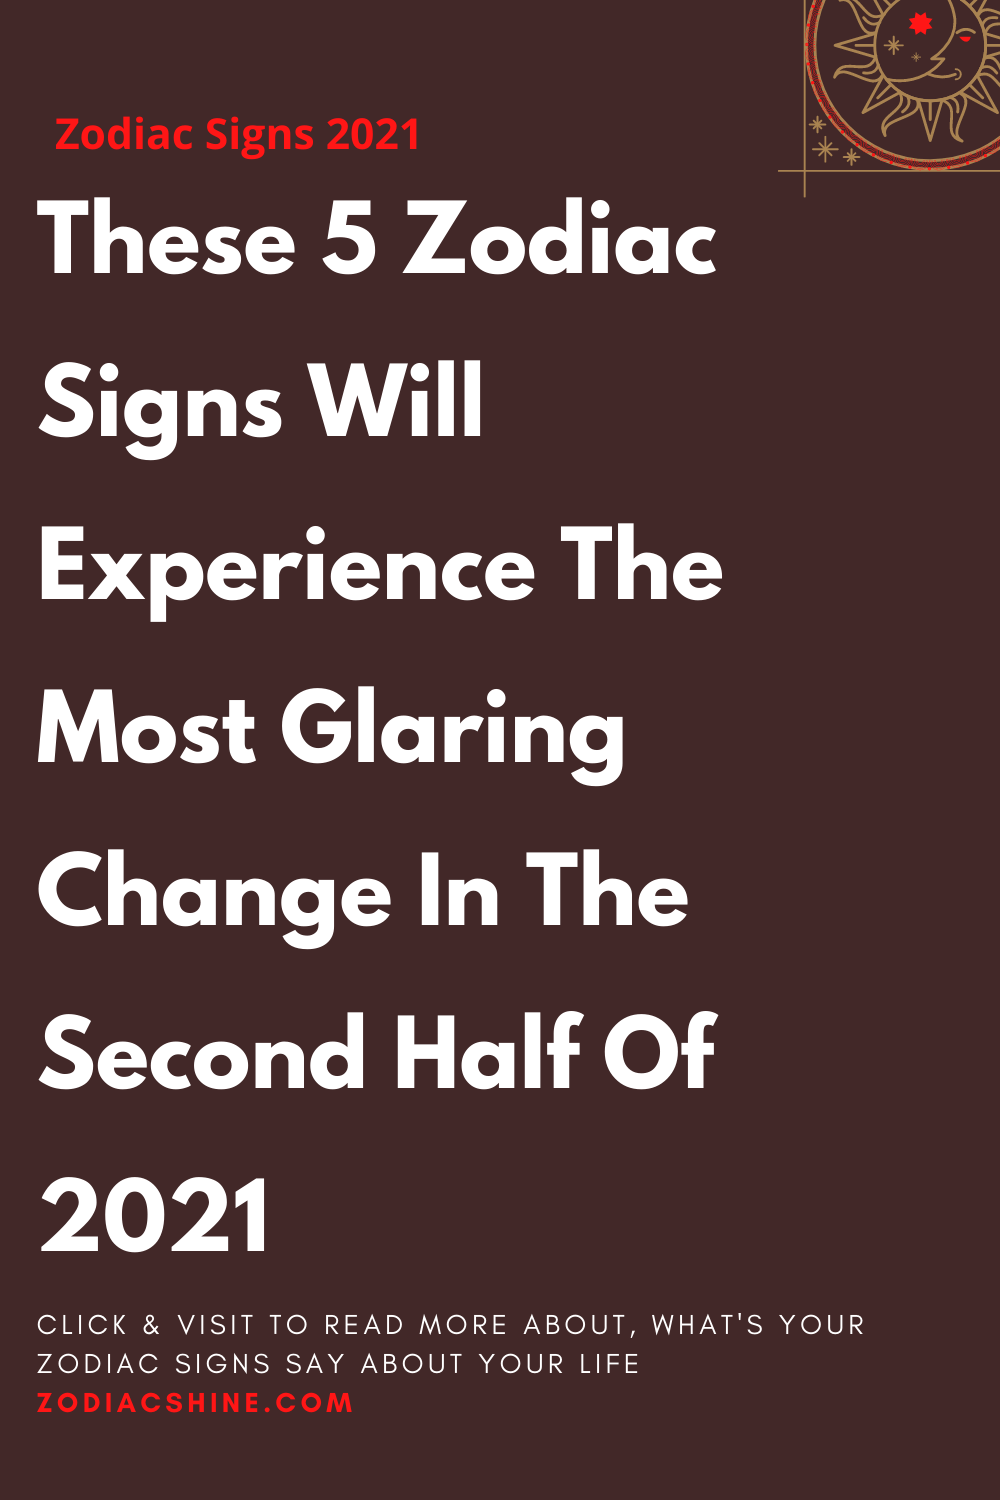 These 5 Zodiac Signs Will Experience The Most Glaring Change In The Second Half Of 2021